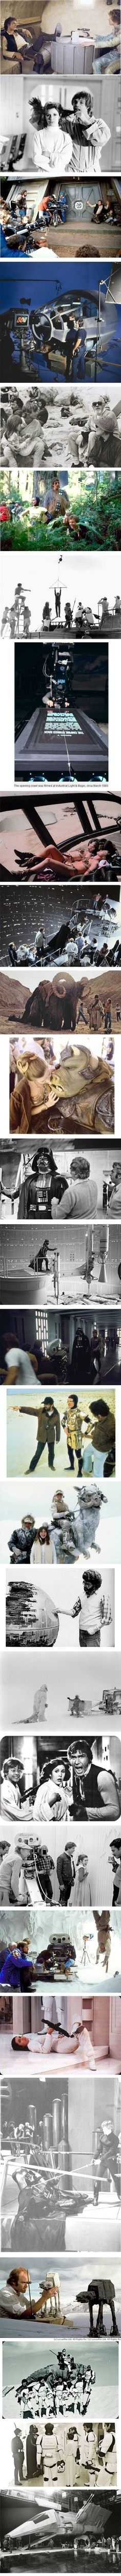 Star Wars behind the scenes!